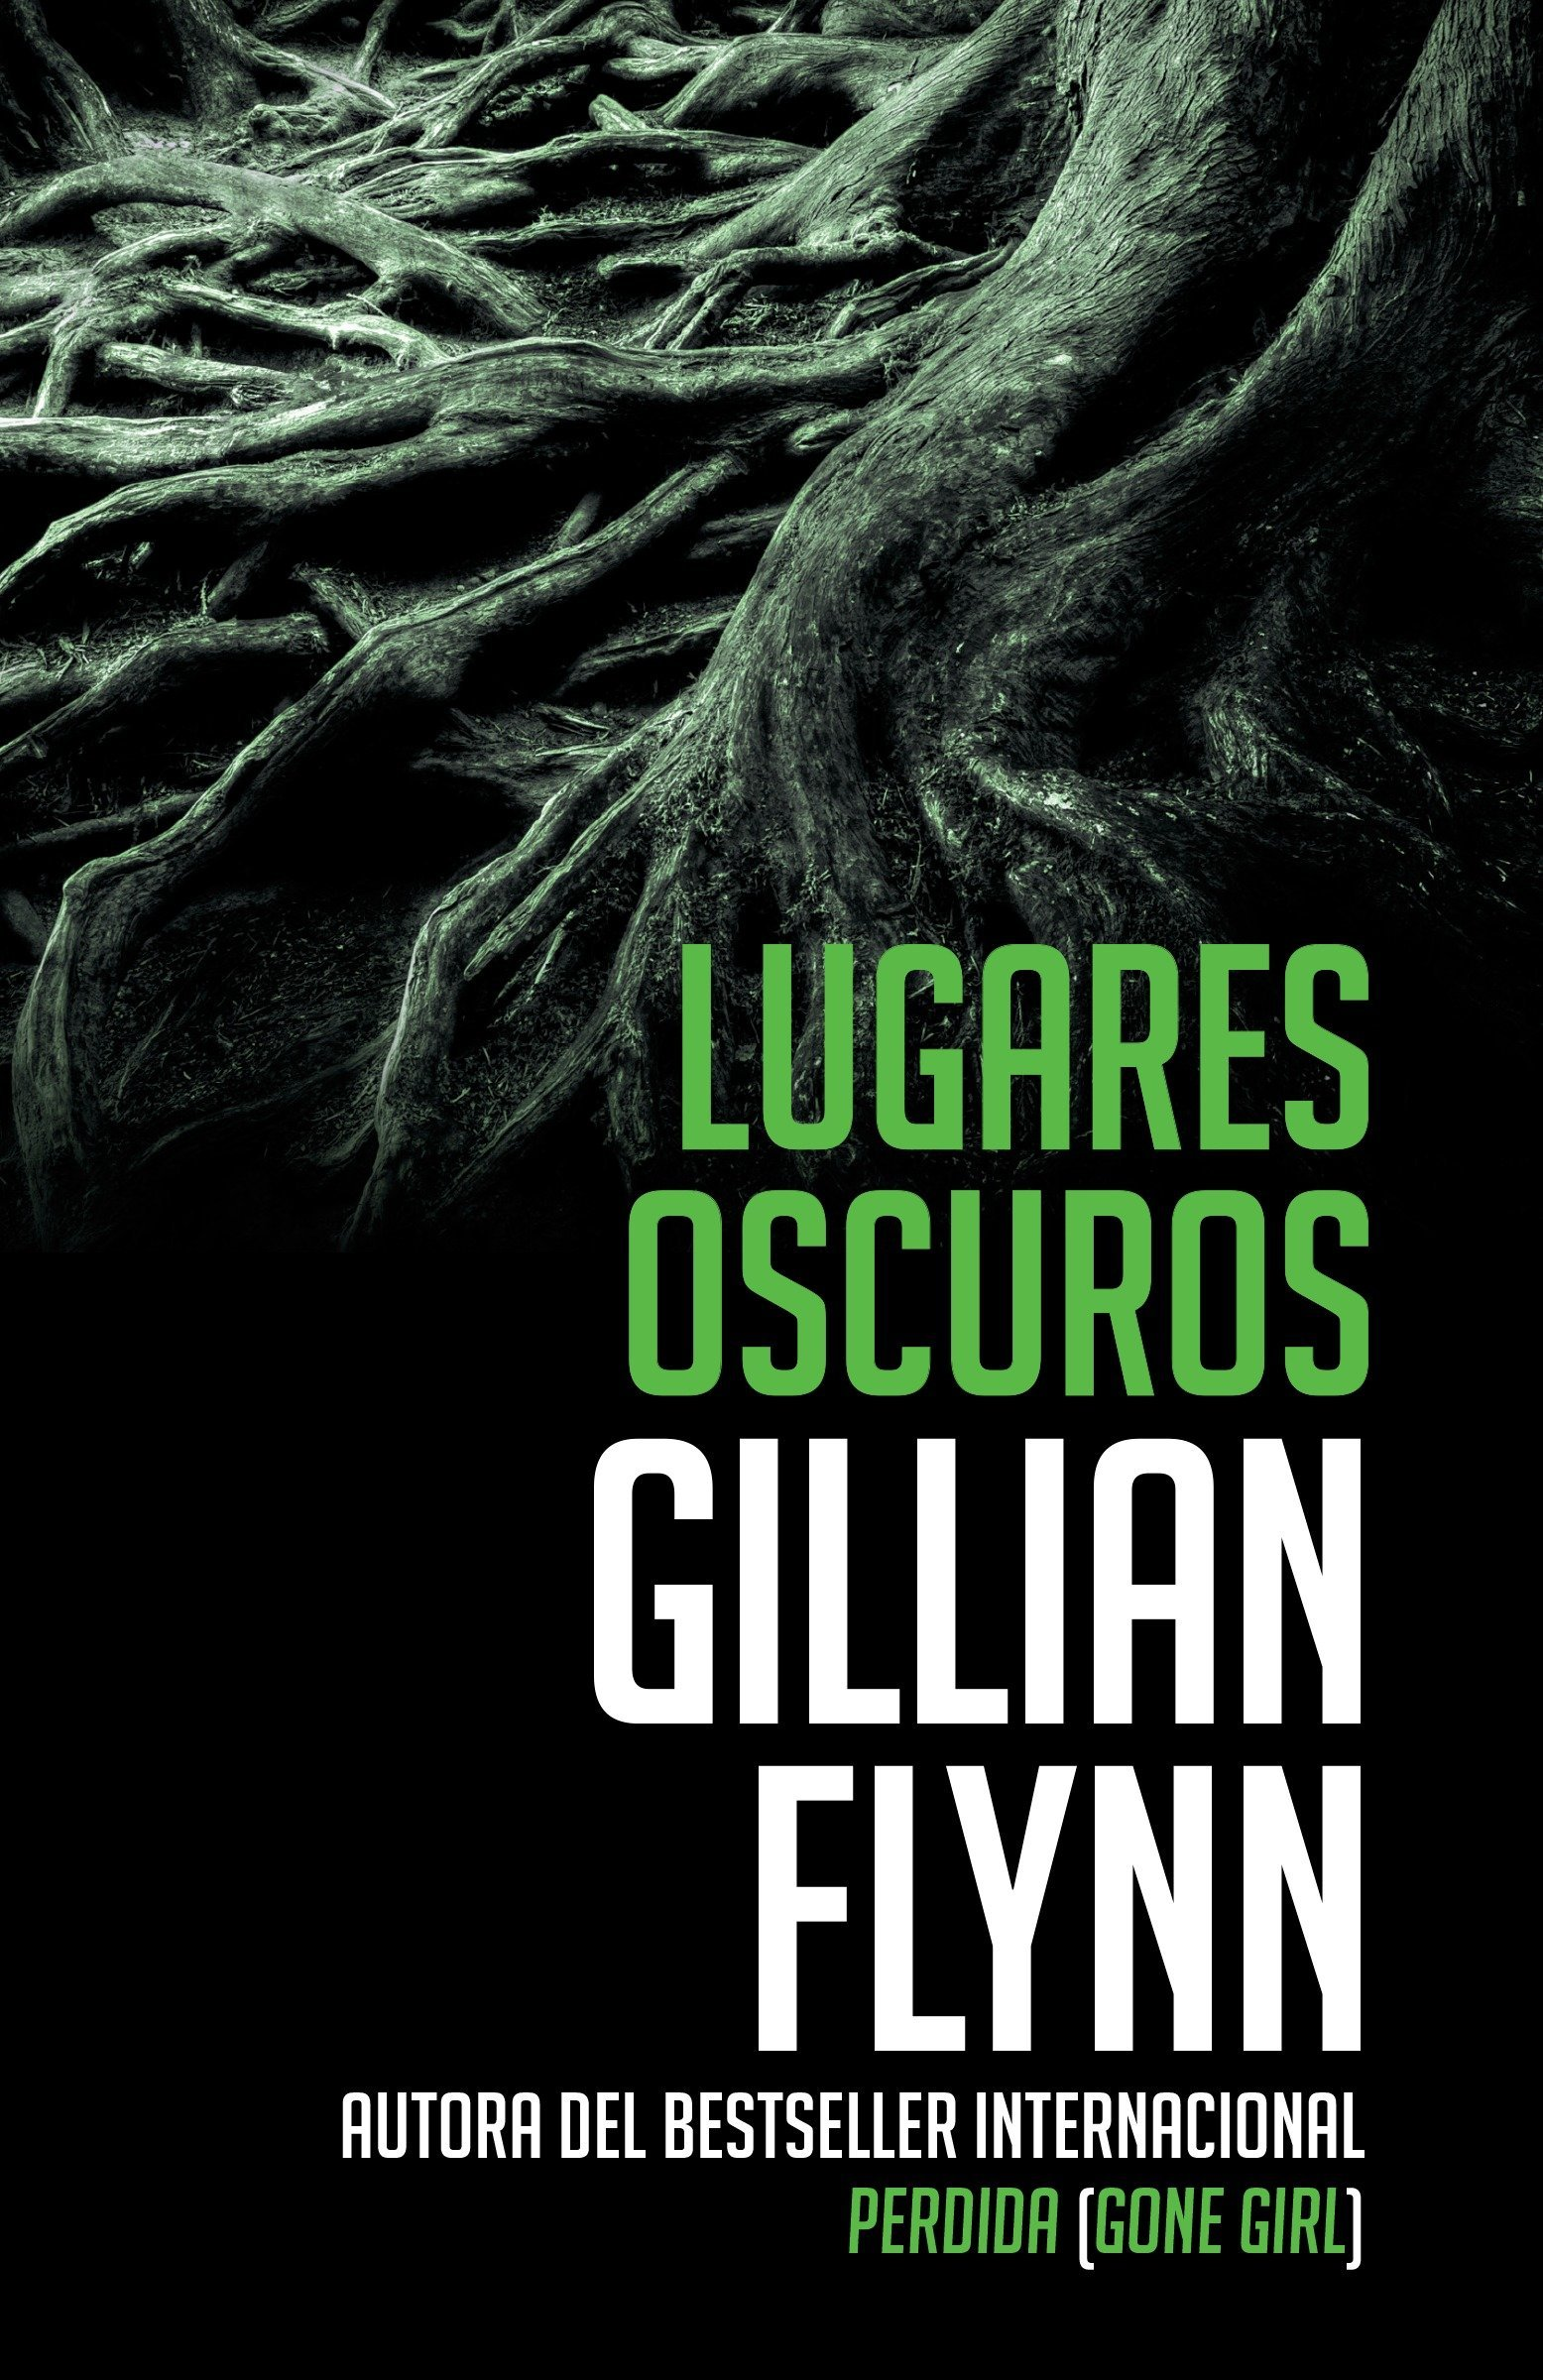 Lugares oscuros: (Spanish-language edition of Dark Places) (Vintage Espanol) (Spanish Edition) by Vintage Espanol